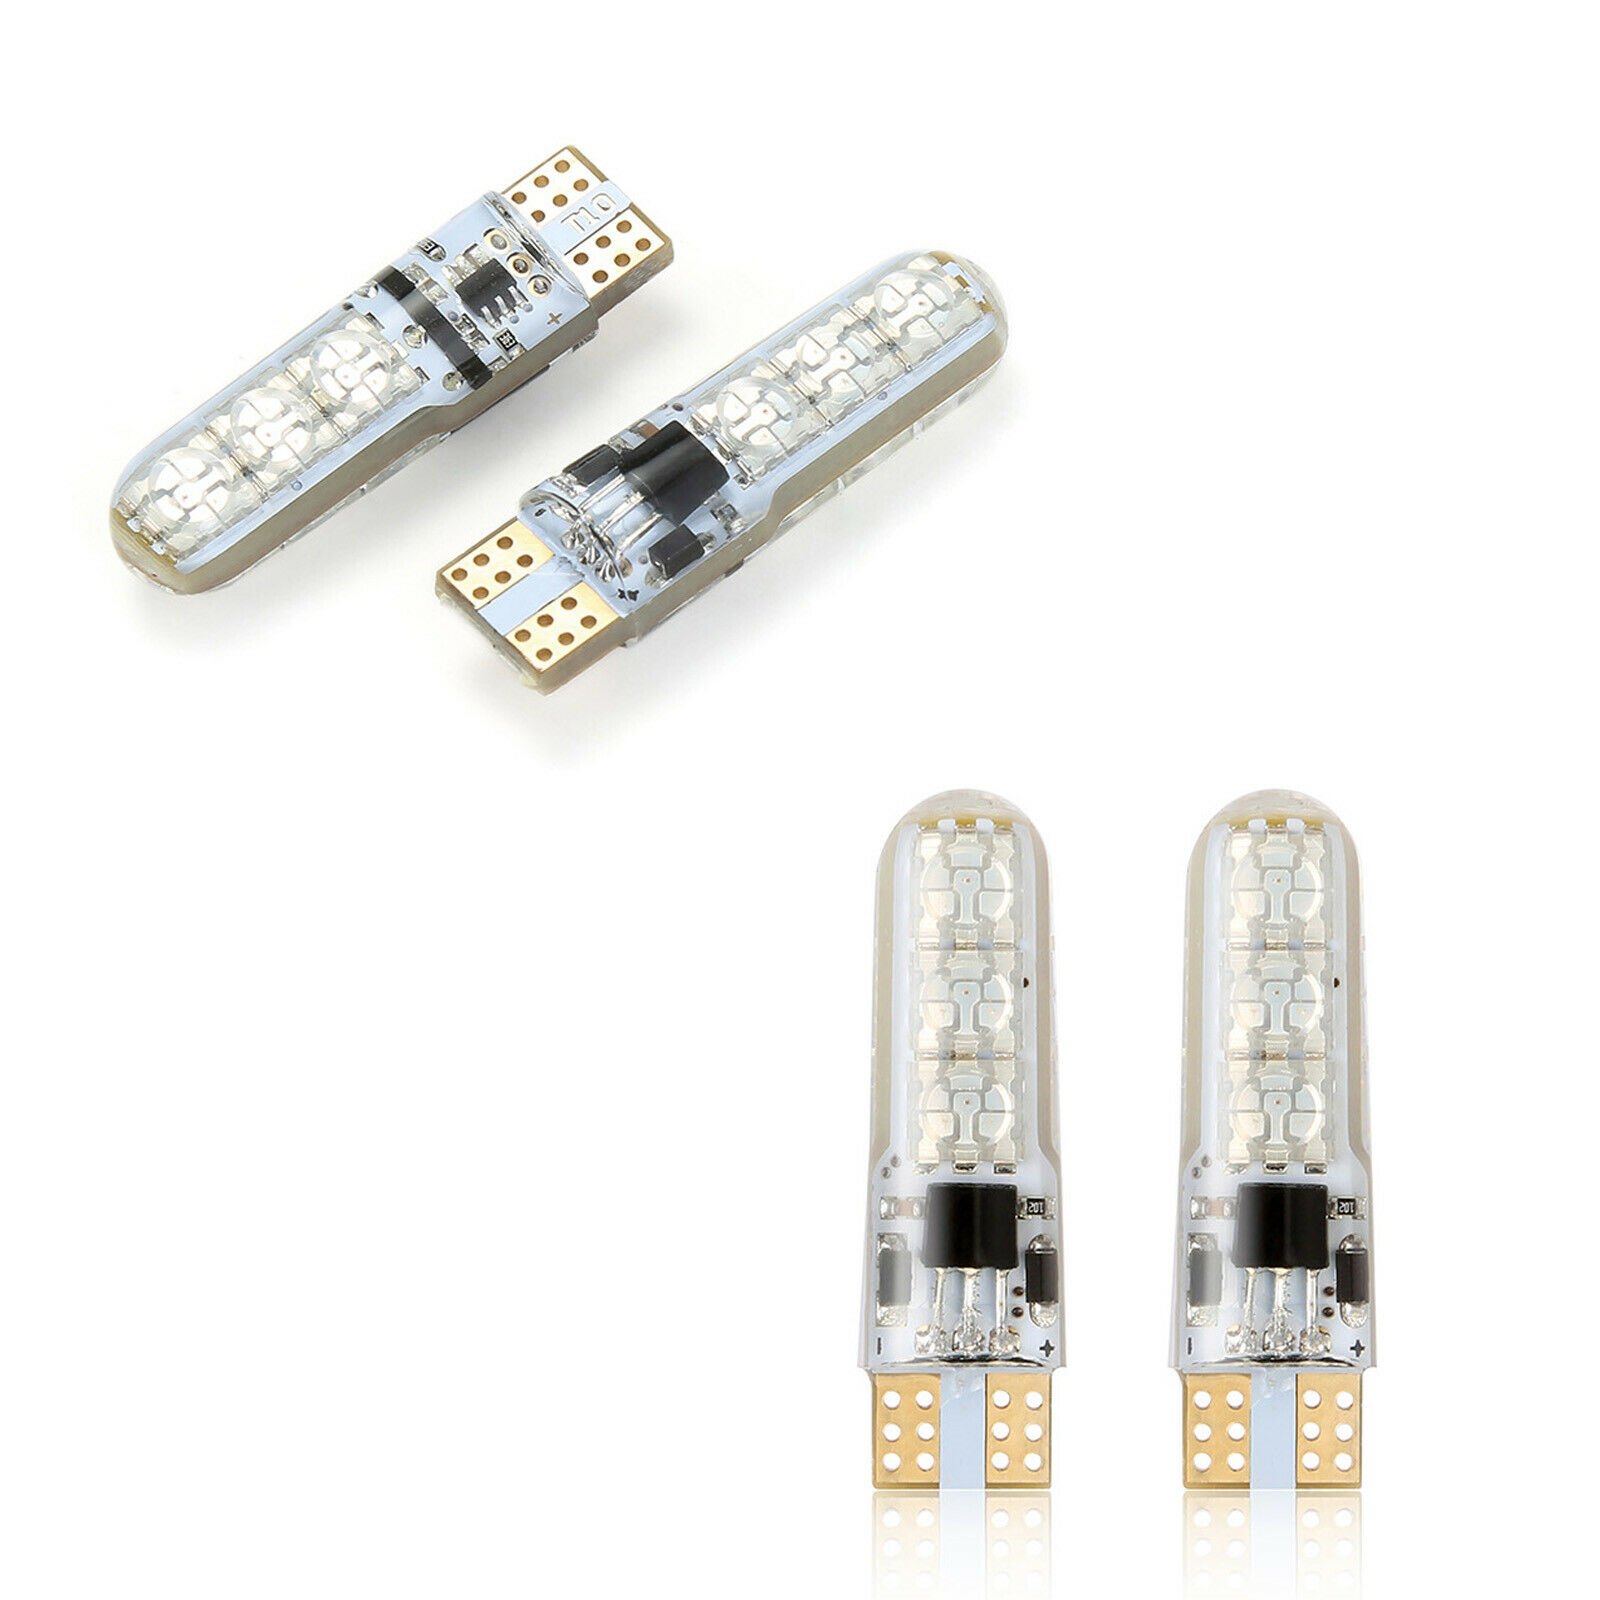 2X Wedge Light T10 W5W RGB LED Bulb DC12V 5050 6SMD Strobe Flash Car Interior Decorative Lights For Auto Remote Control Lighting